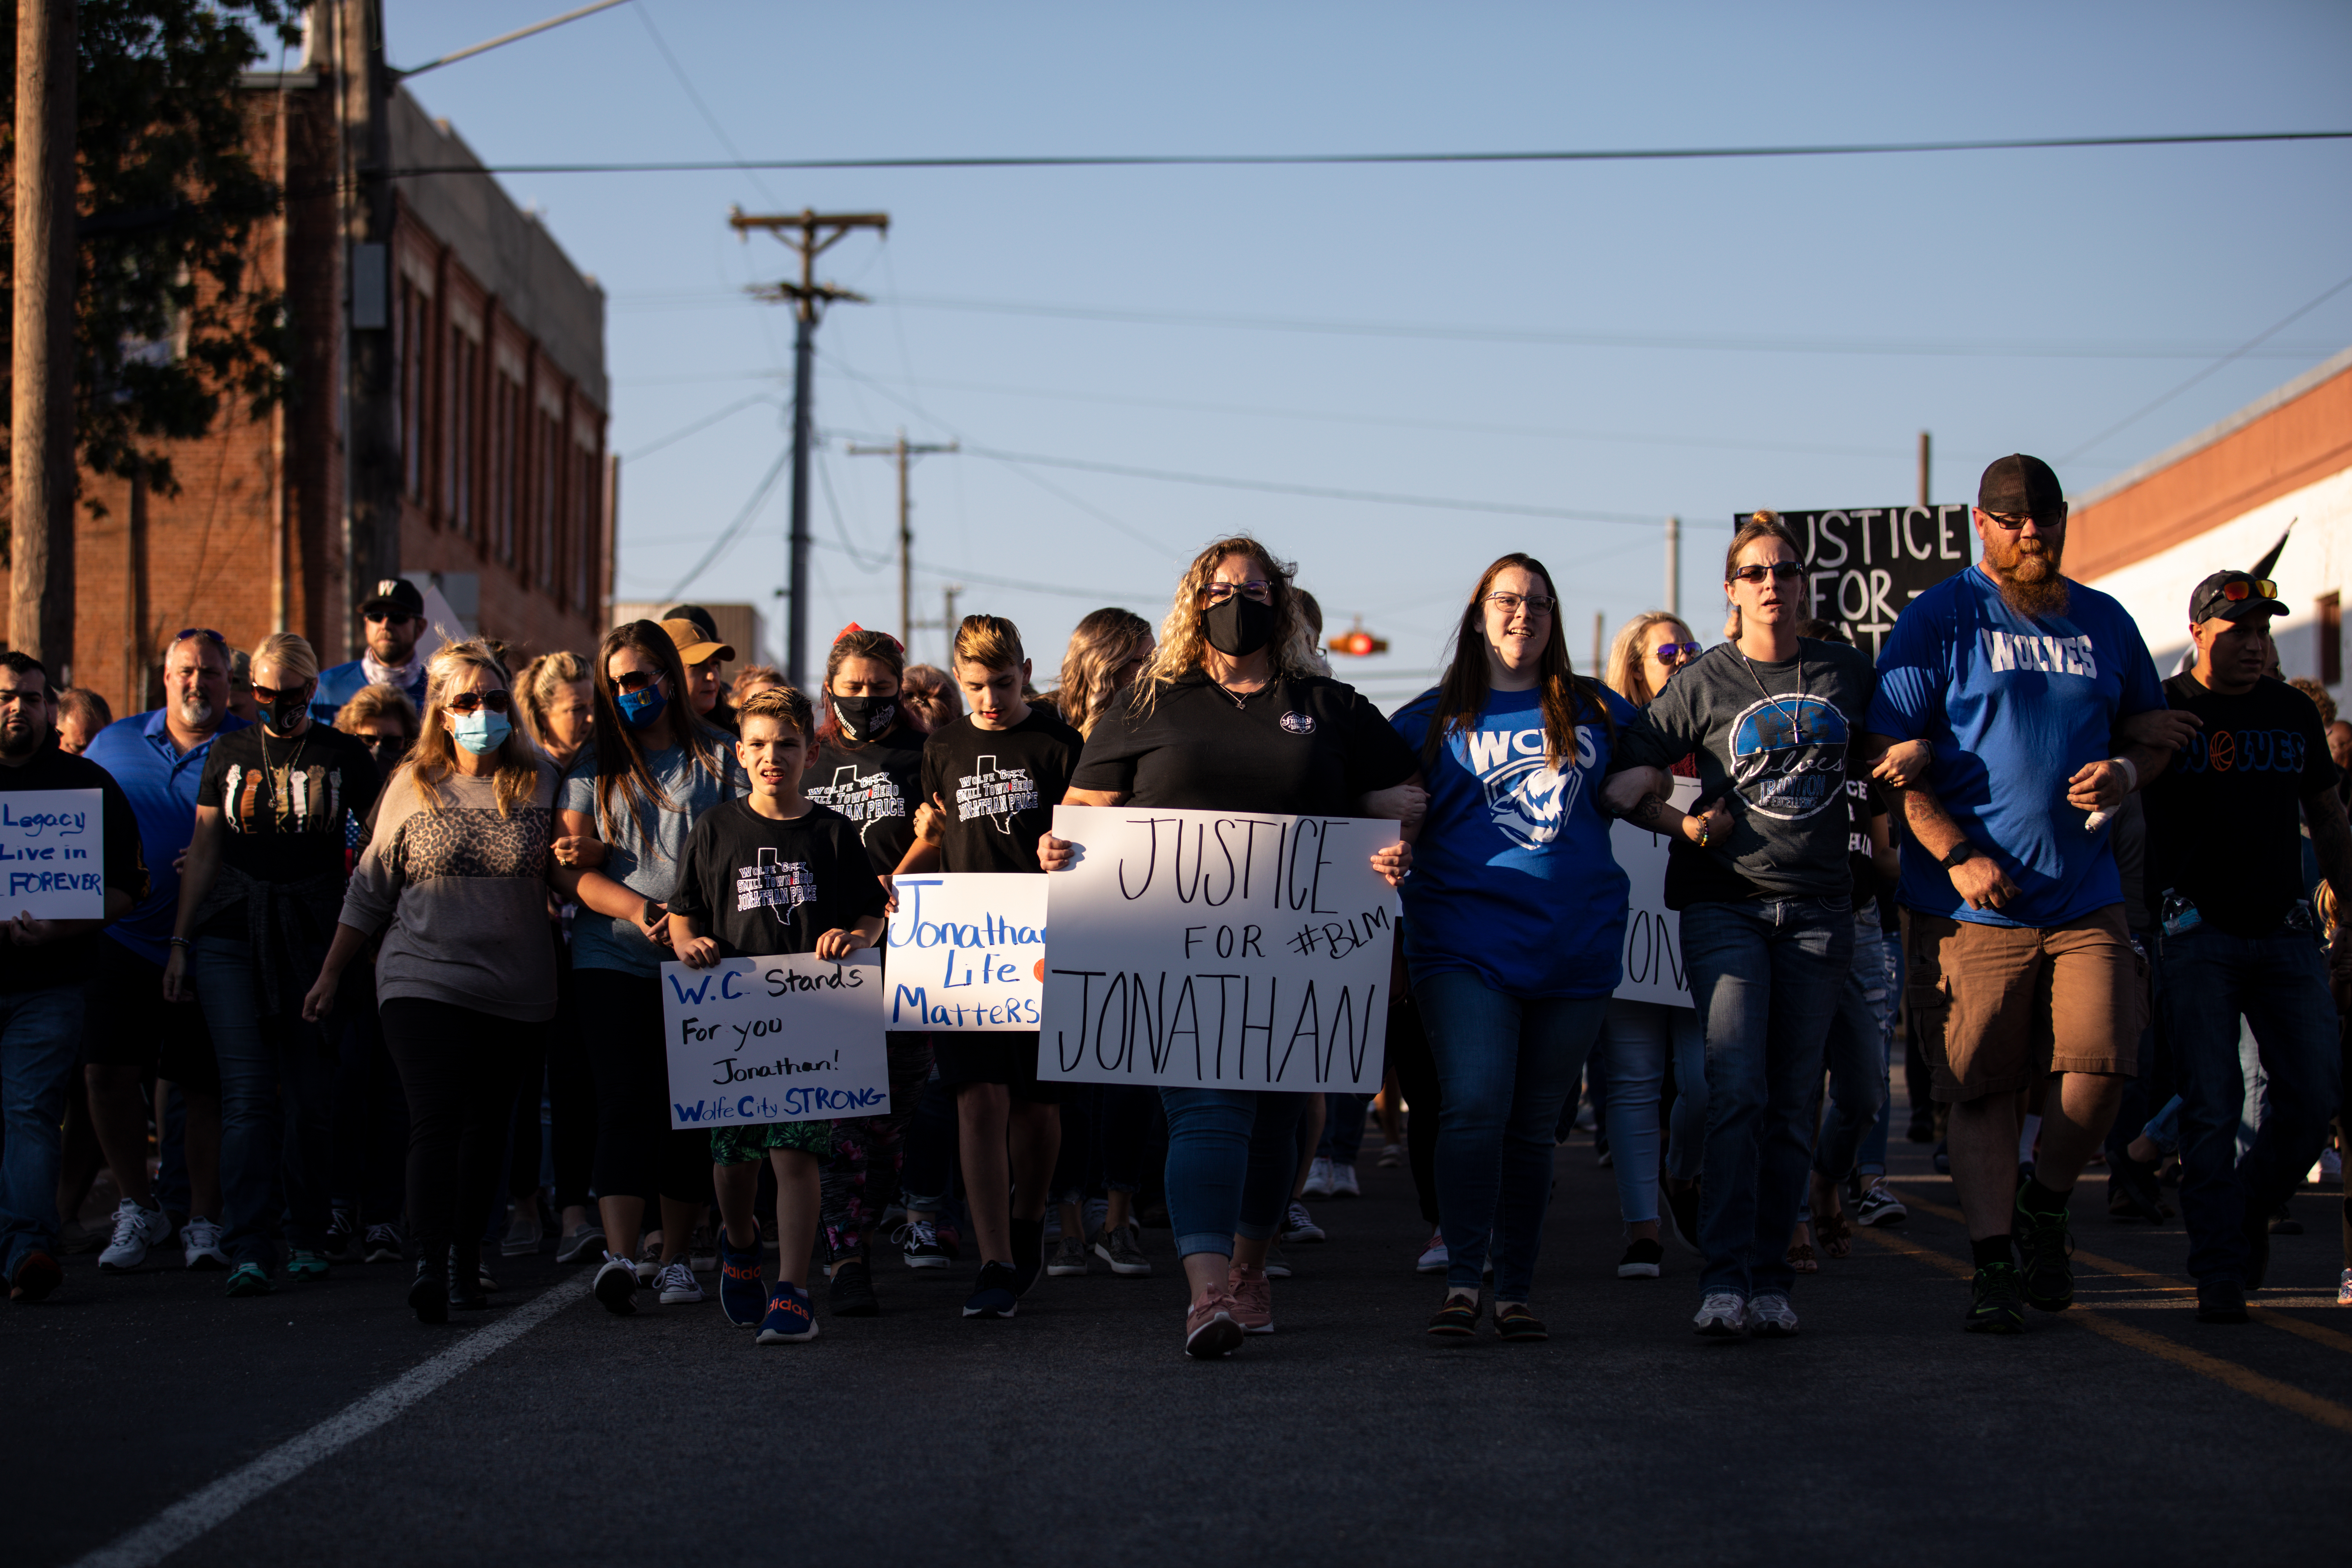 People gather for a march, rally and candle light vigil in honor Jonathan Price on Oct. 5, 2020 in Wolfe City, Texas.